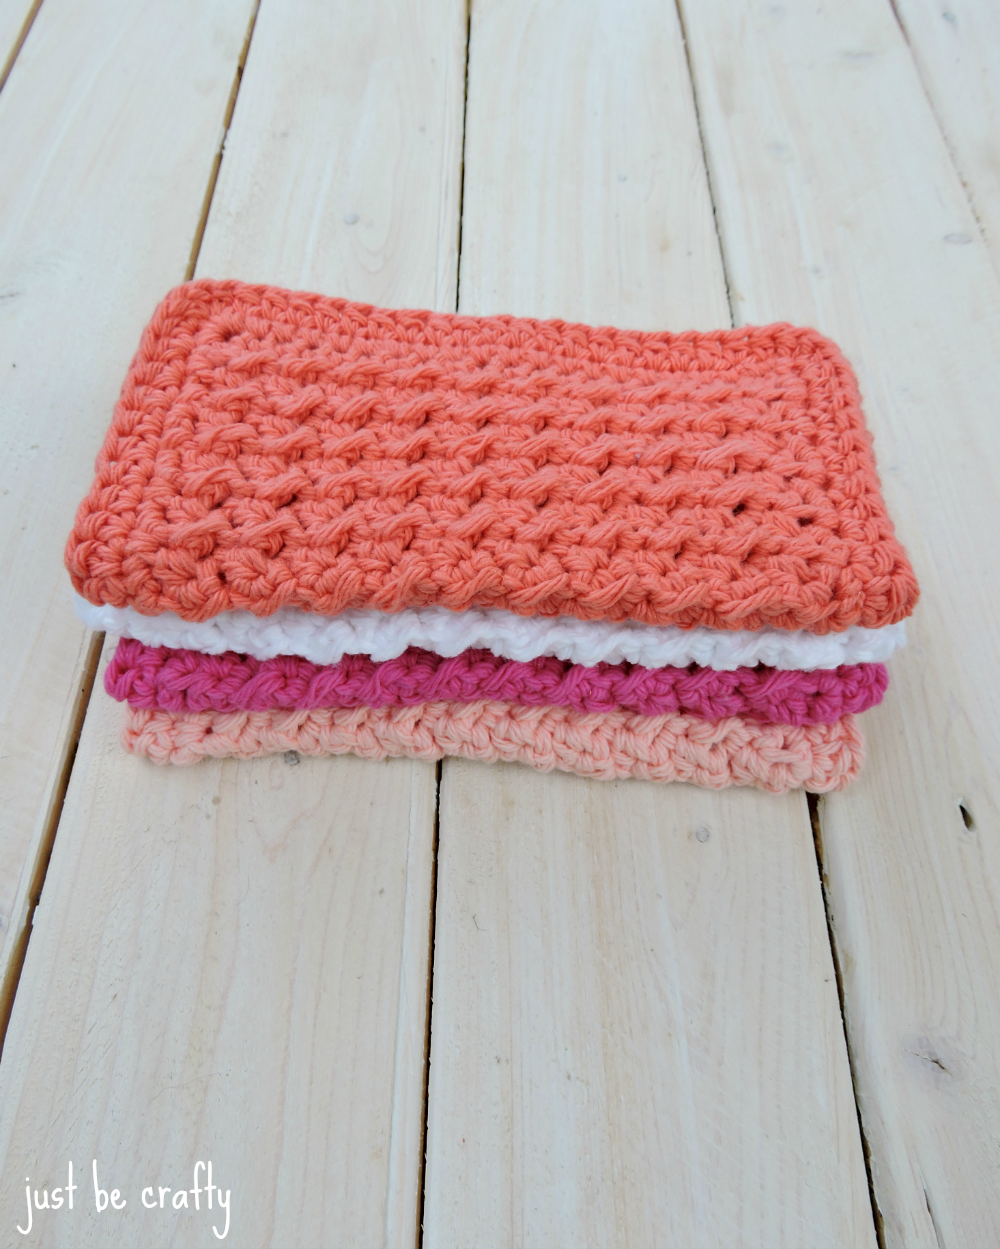 Crochet cabin dishcloth pattern free pattern by cabin crochet crochet cabin dishcloth pattern free pattern by bankloansurffo Image collections